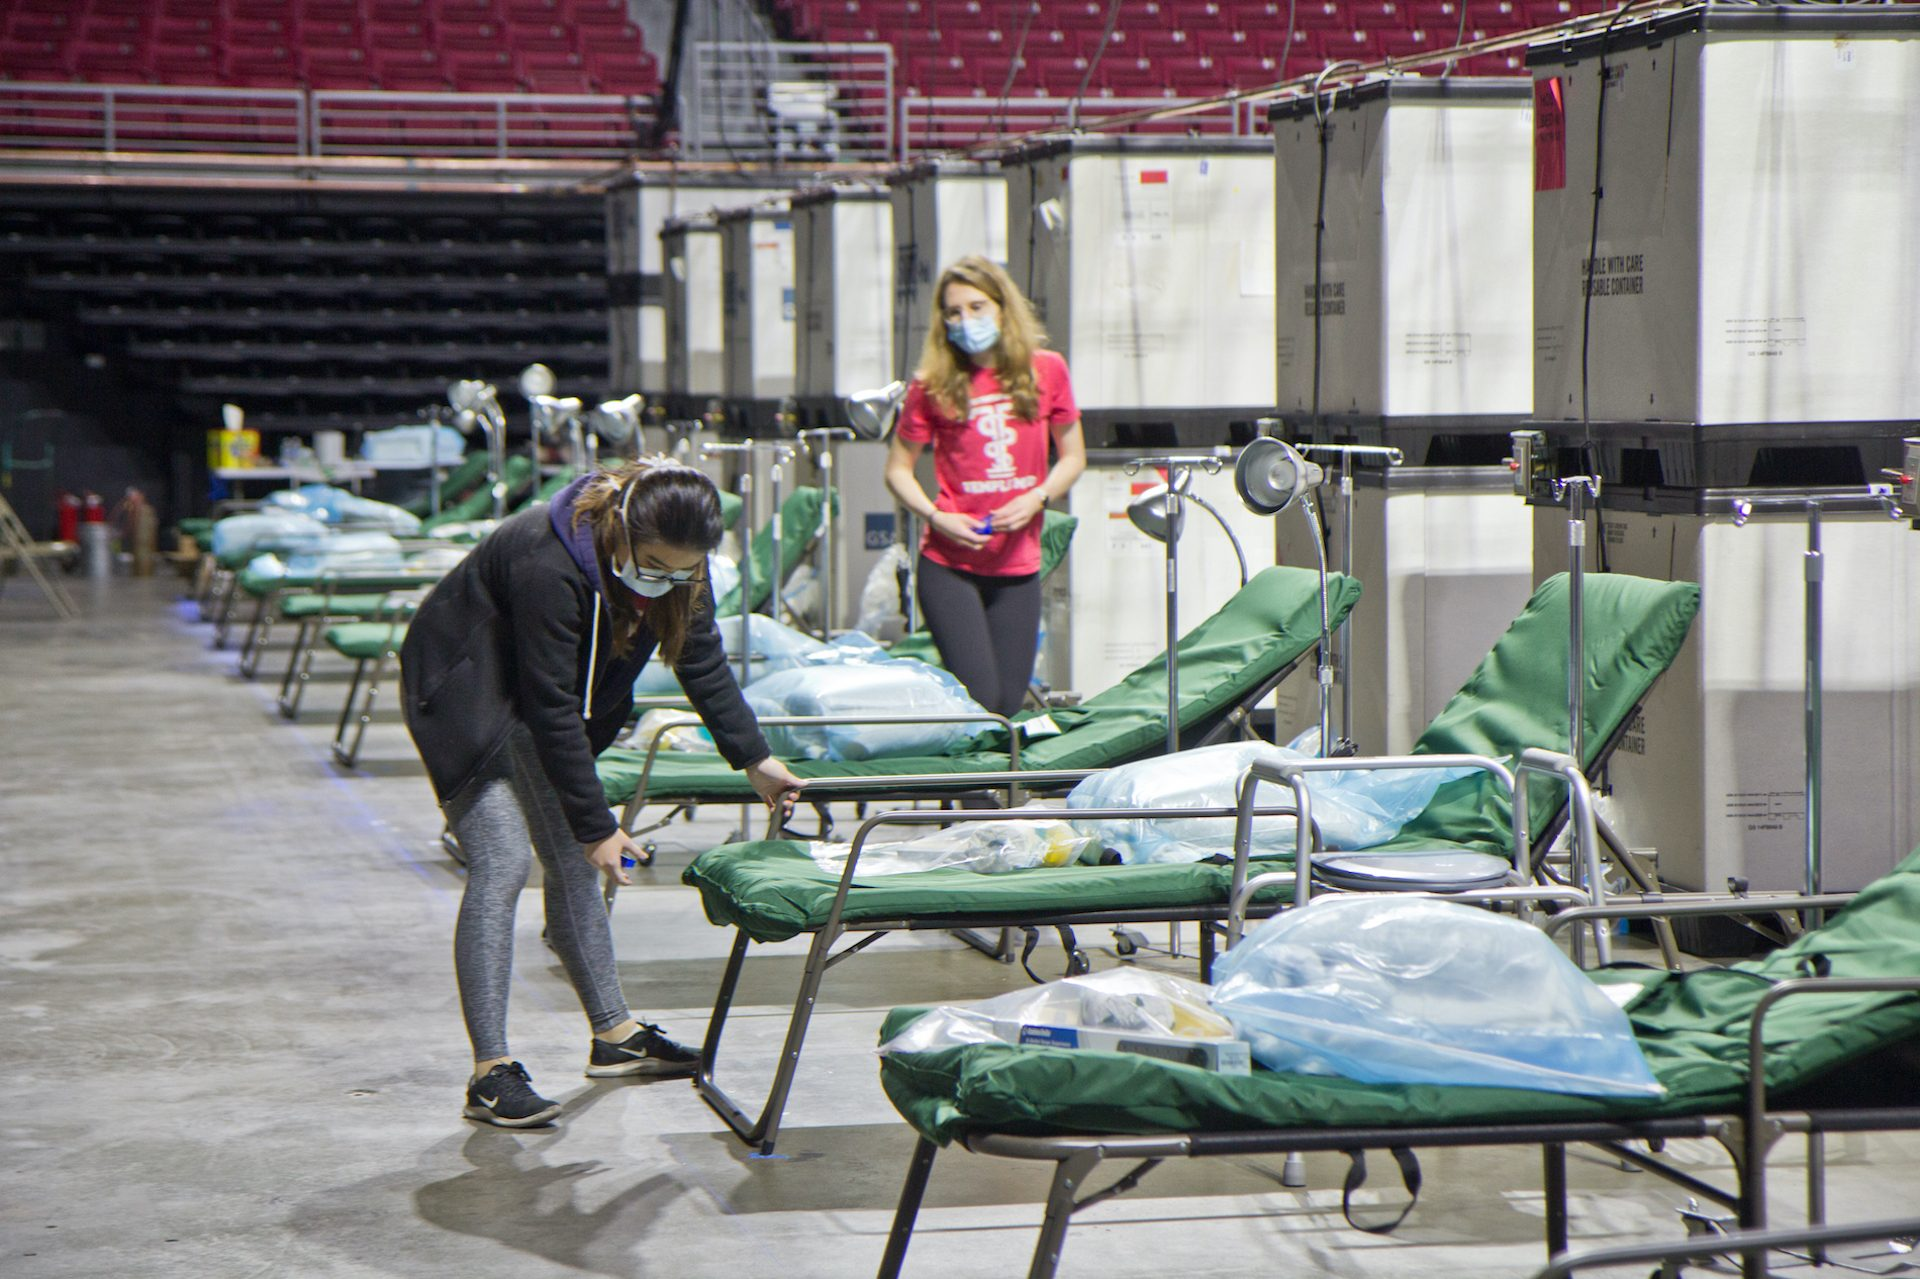 Temple University medical students work to prepare 180 beds at the Liacouras Center, which is set to open April 16 to accommodate an overflow of COVID-19 patients in Philadelphia.